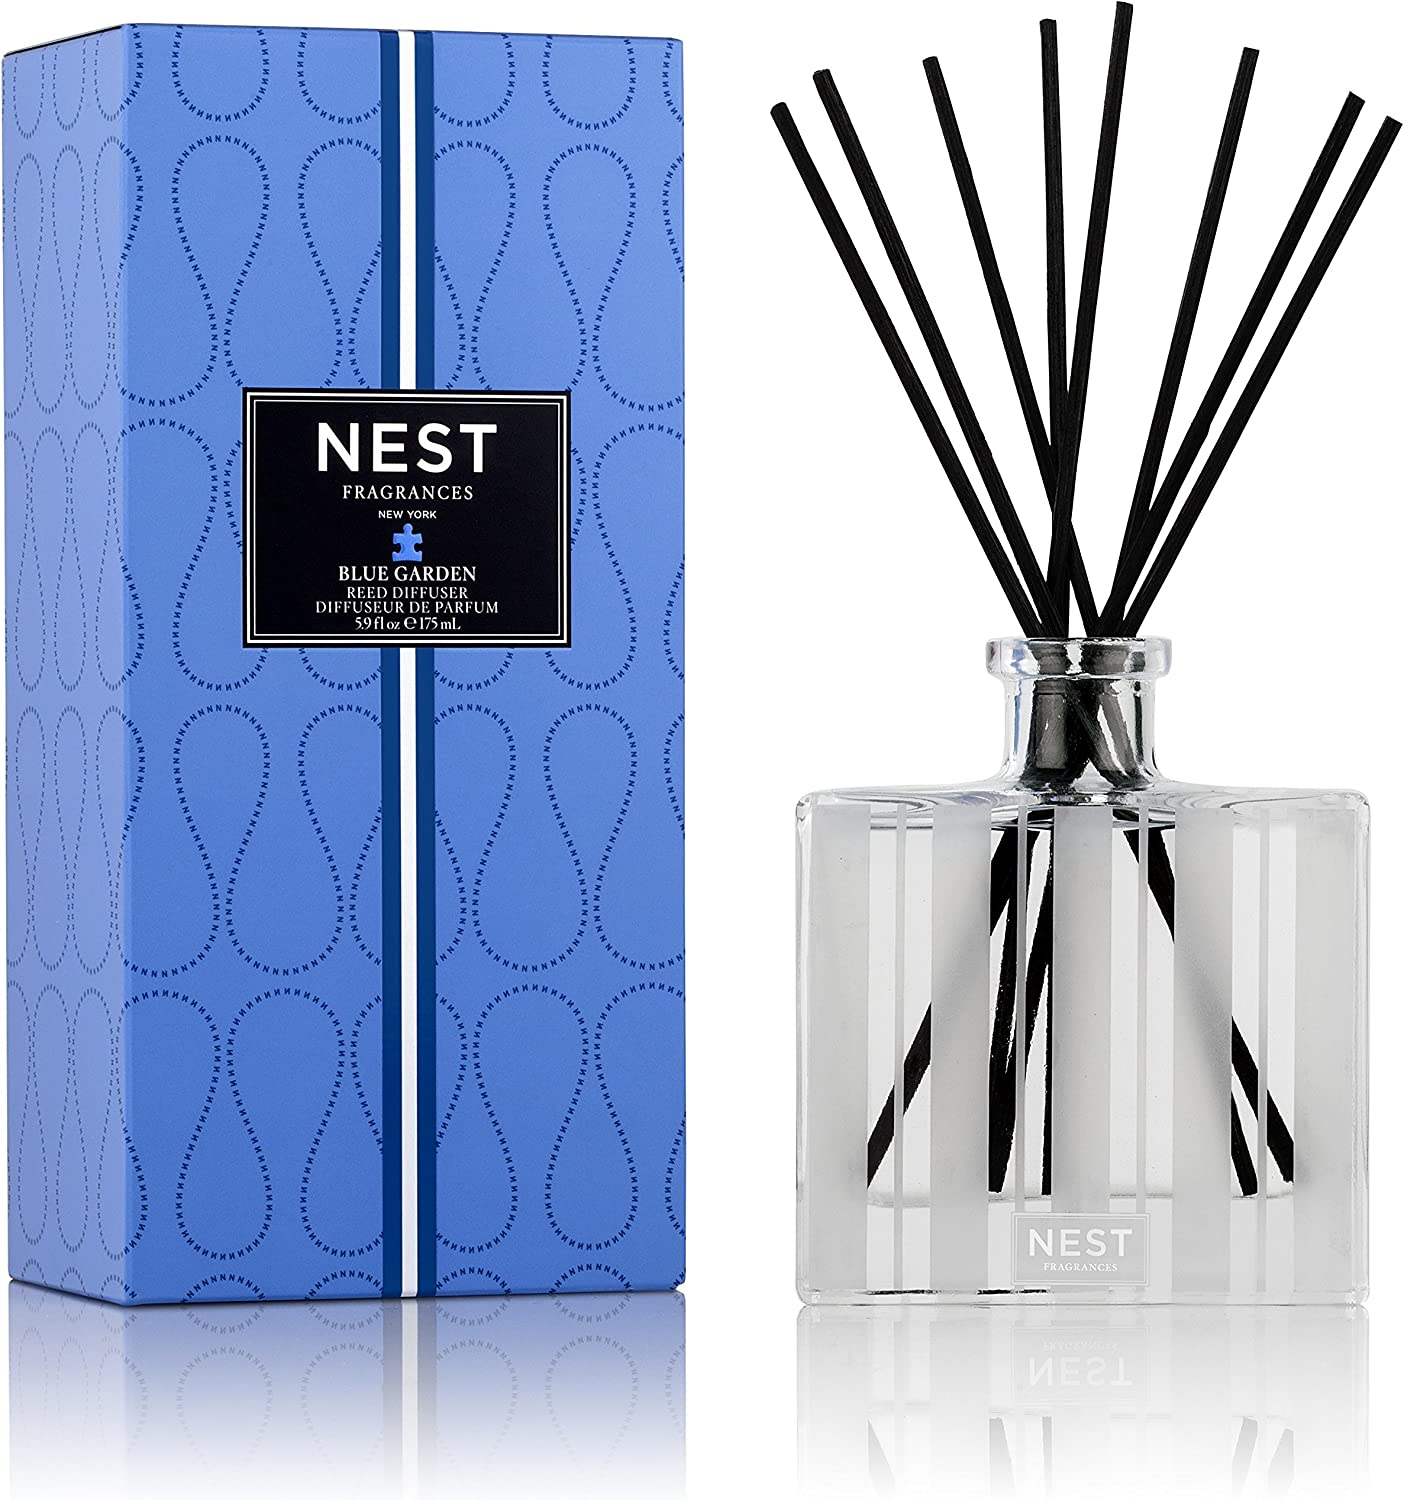 NEST Fragrances NEST08-BG Reed Diffuser- Blue Garden , 5.9 fl oz